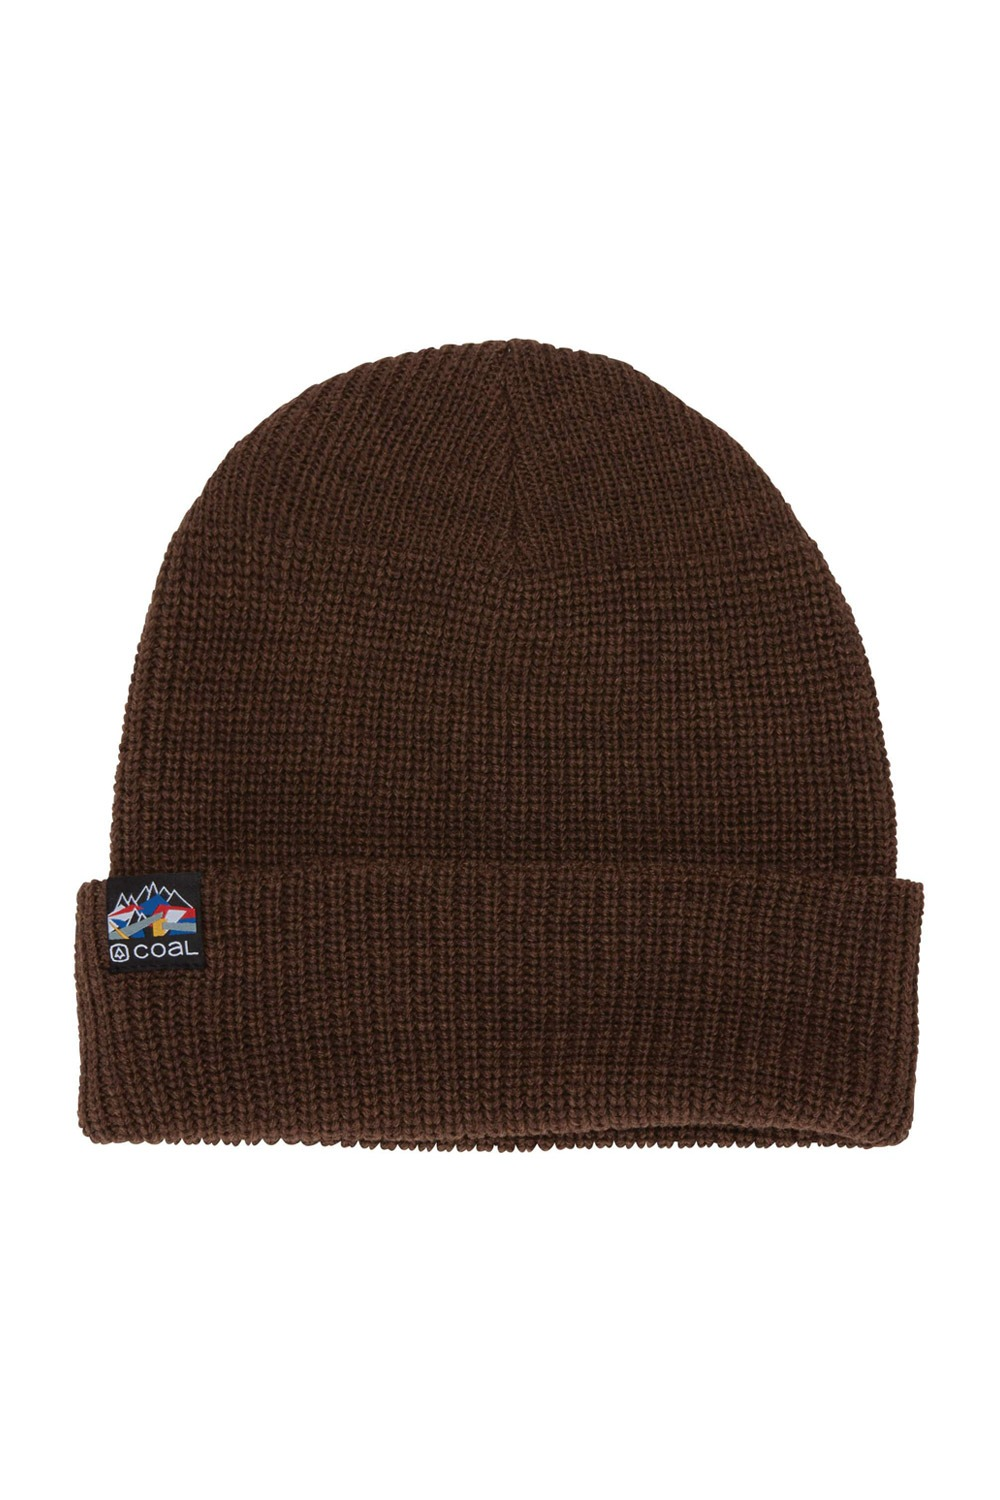 2021 콜 스쿼드 숏비니 모자  COAL THE SQUAD BEANIE_BRN (SPICE BROWN)_DICA001BW